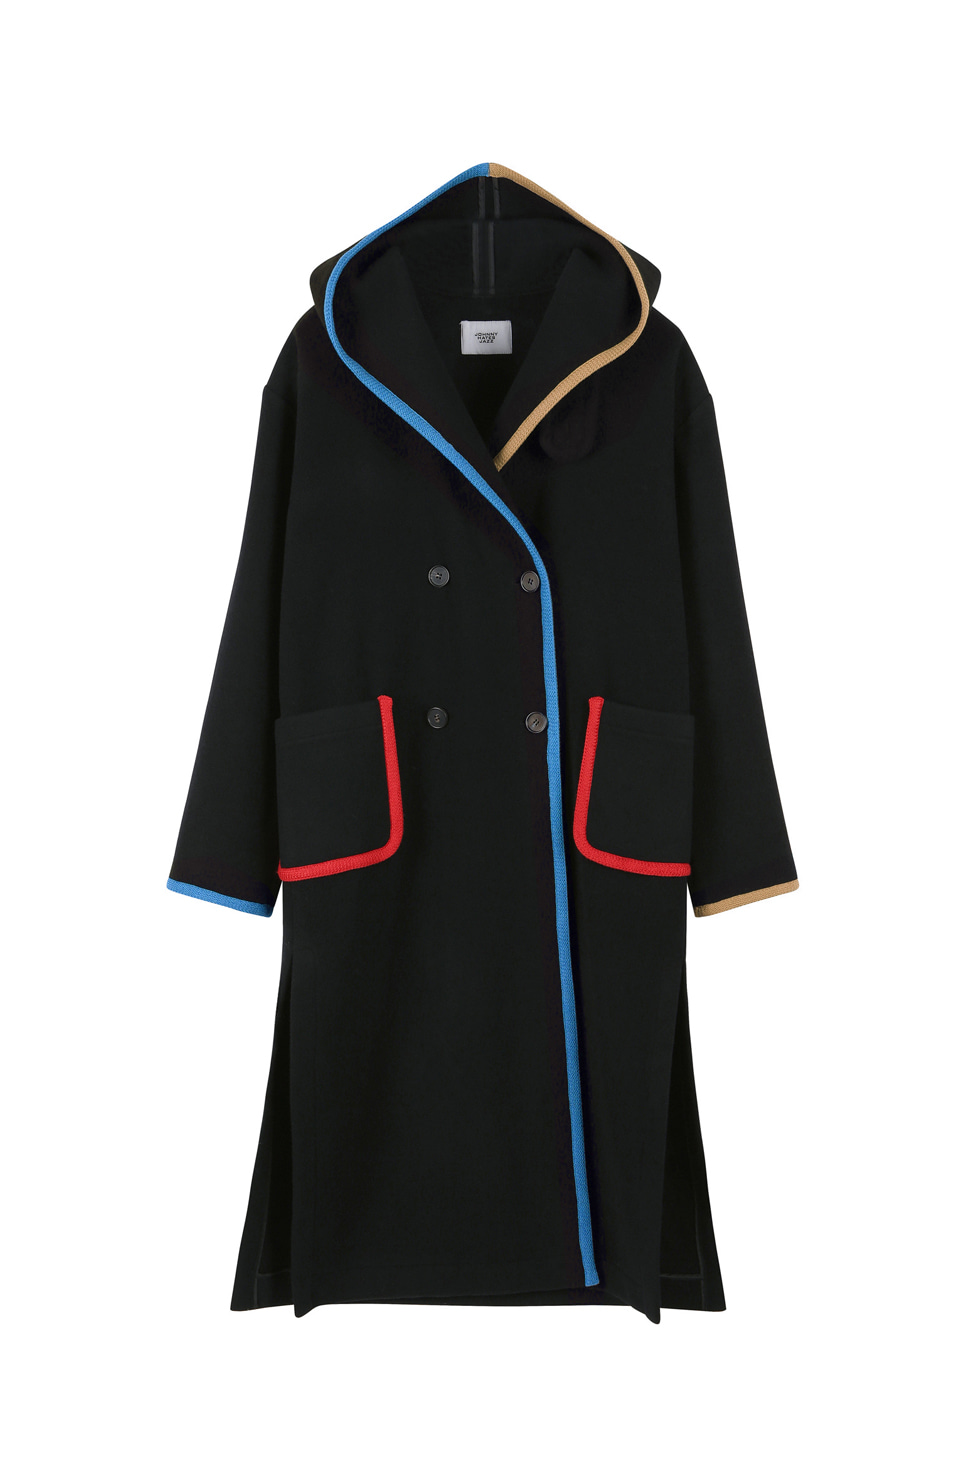 MULTI-COLORED BINDING COAT -BLACK